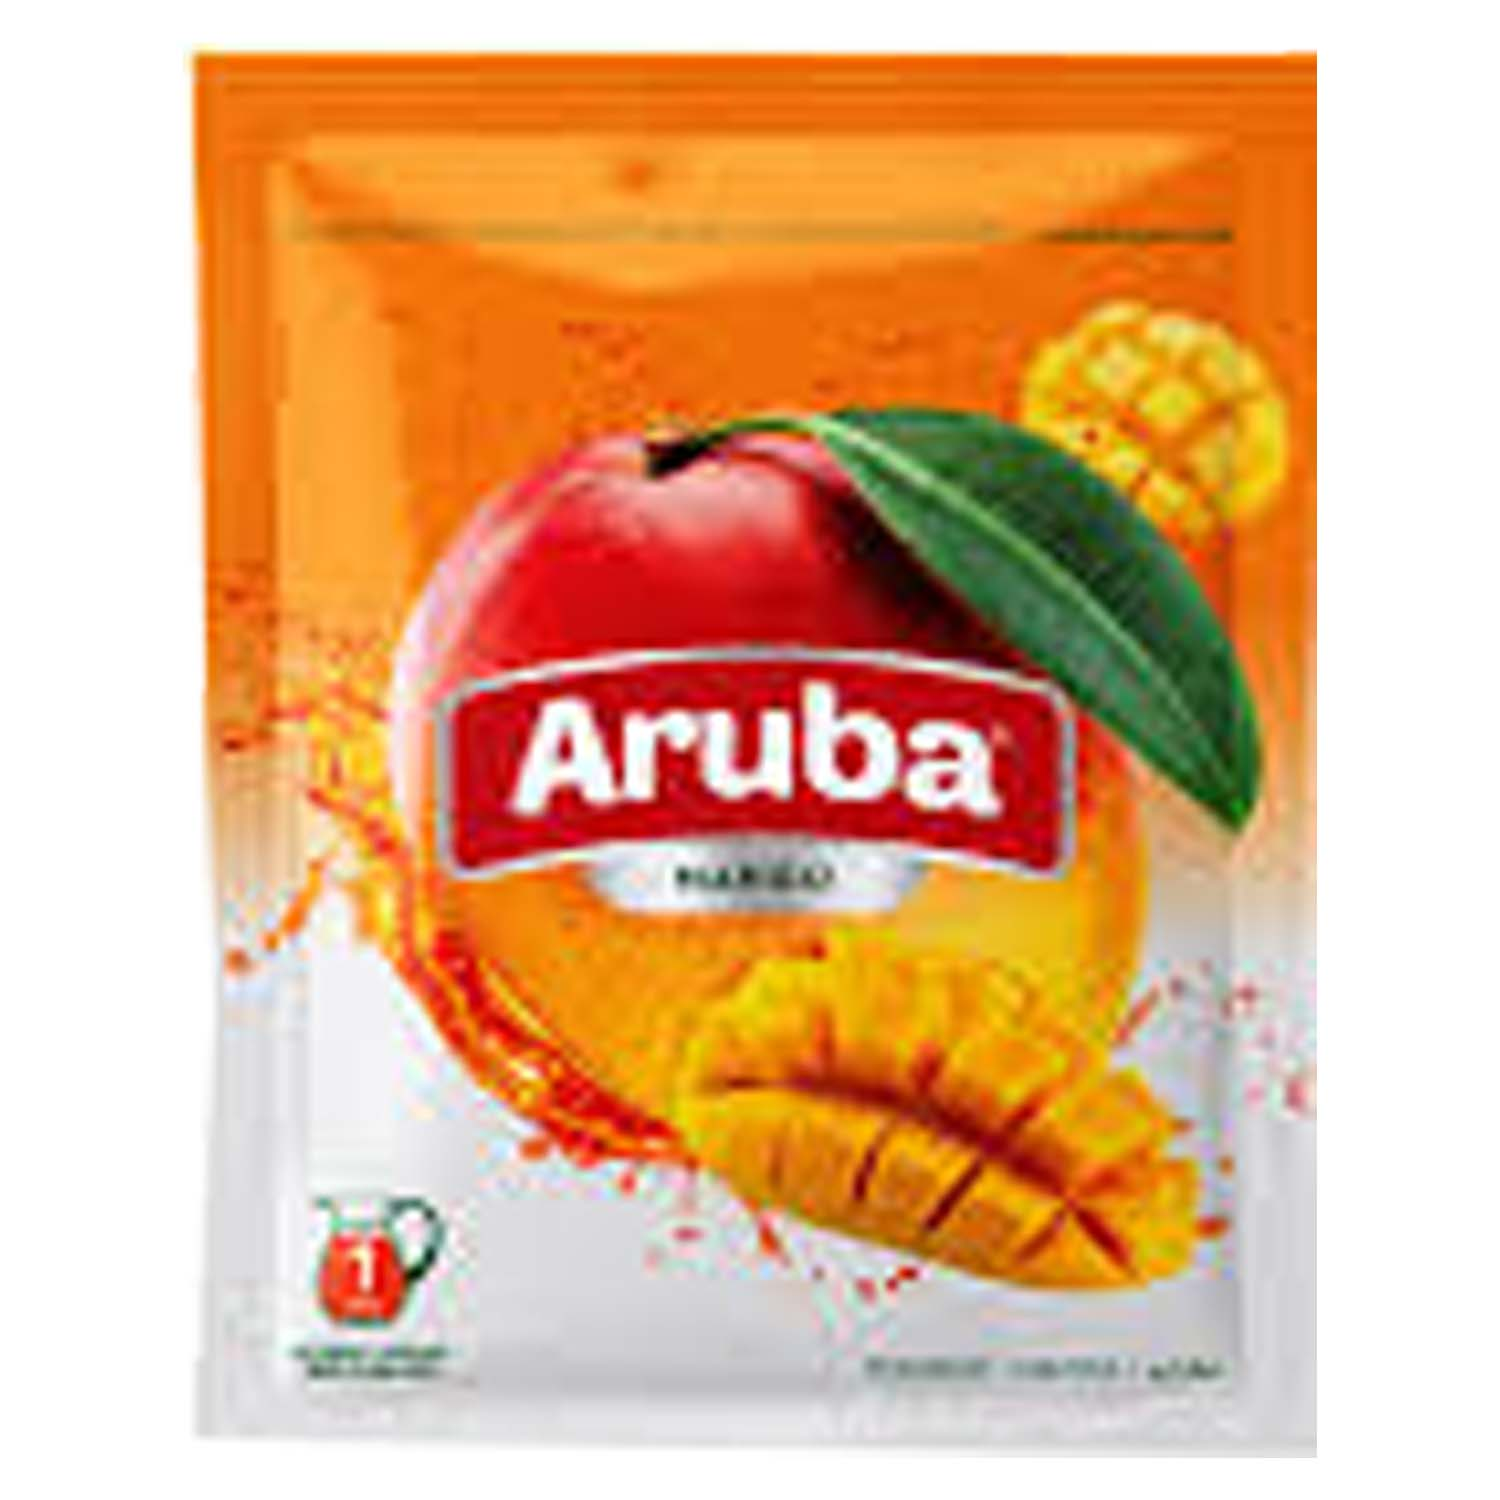 Aruba Concentrate Juice - Mango 30g